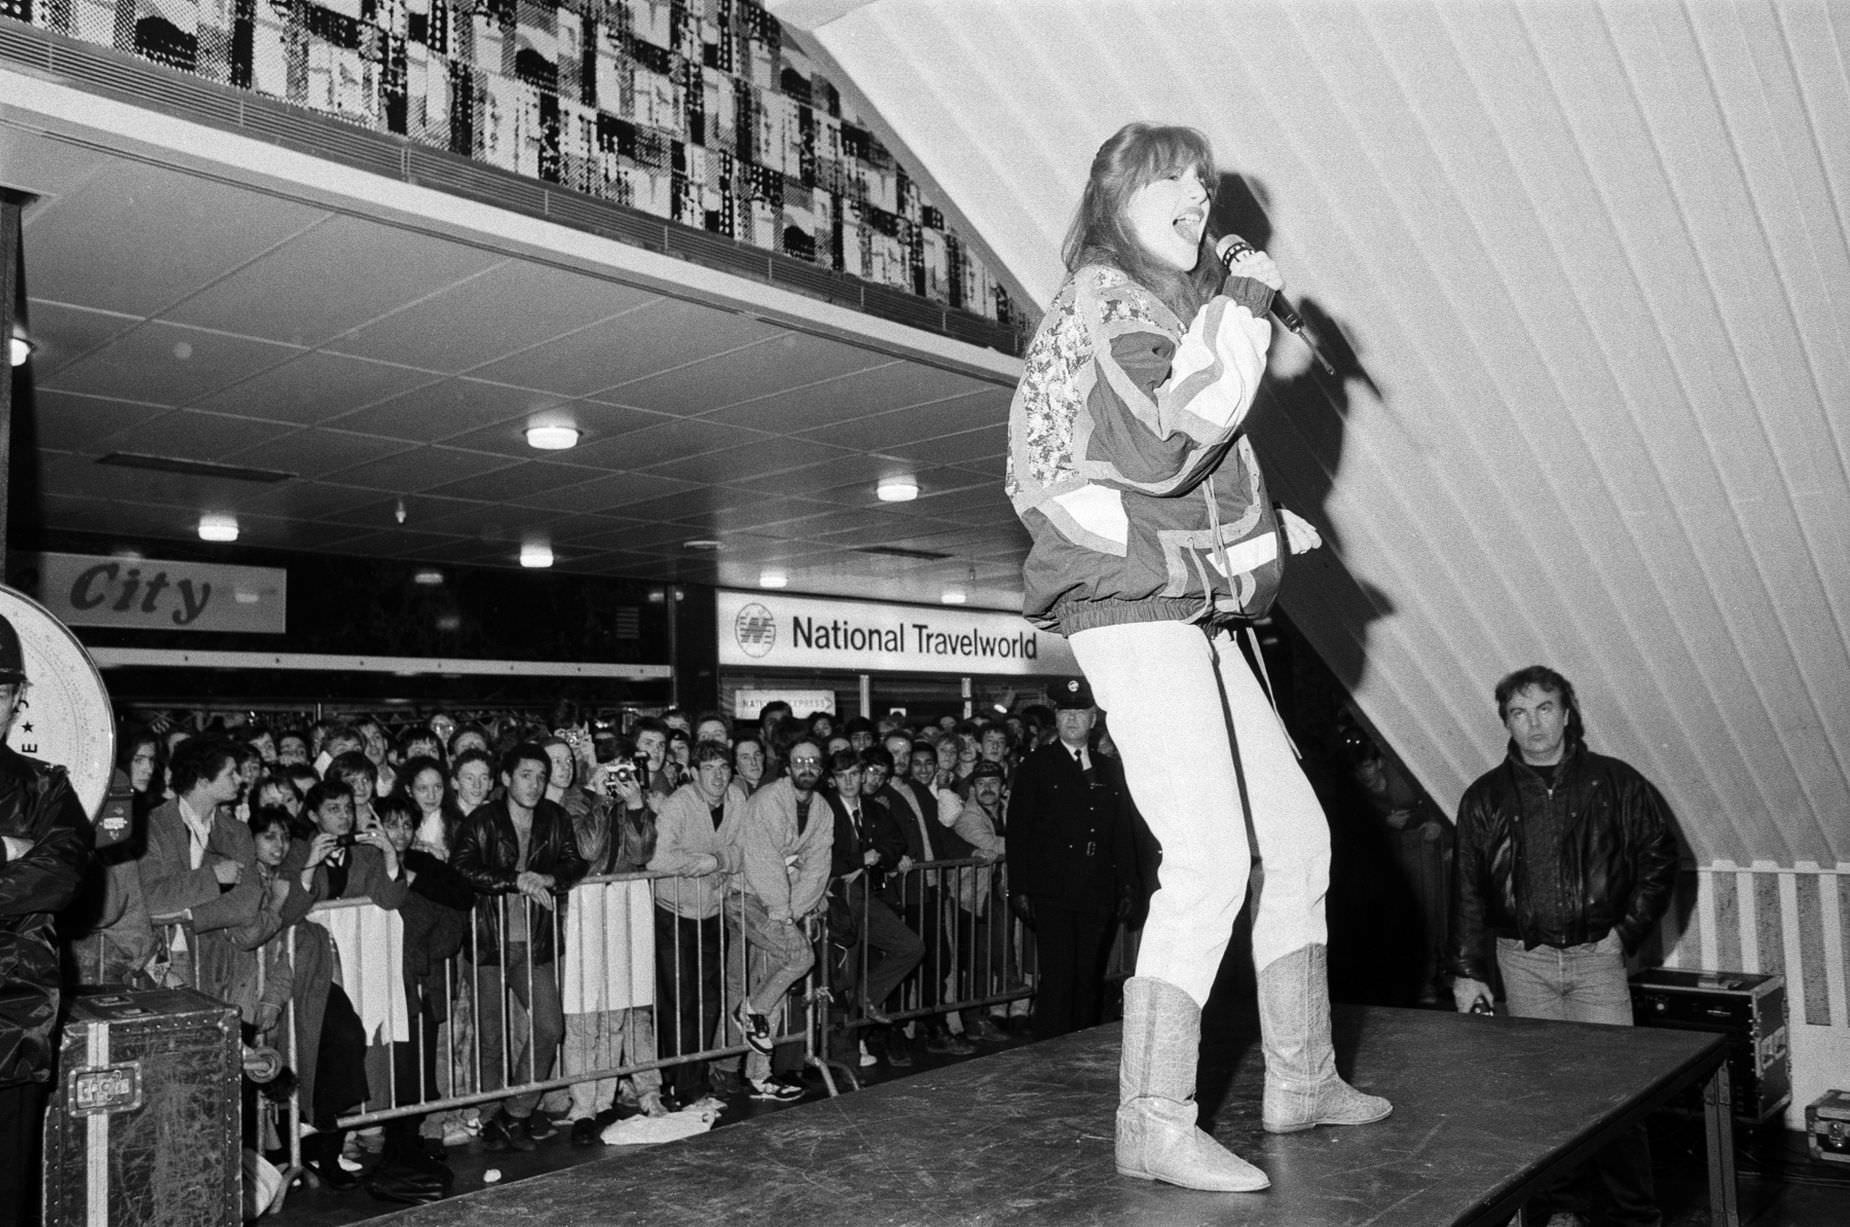 Thousands of young pop fans gather at the Bull Ring Shopping Centre for pop singer Tiffany, 19th January 1988.